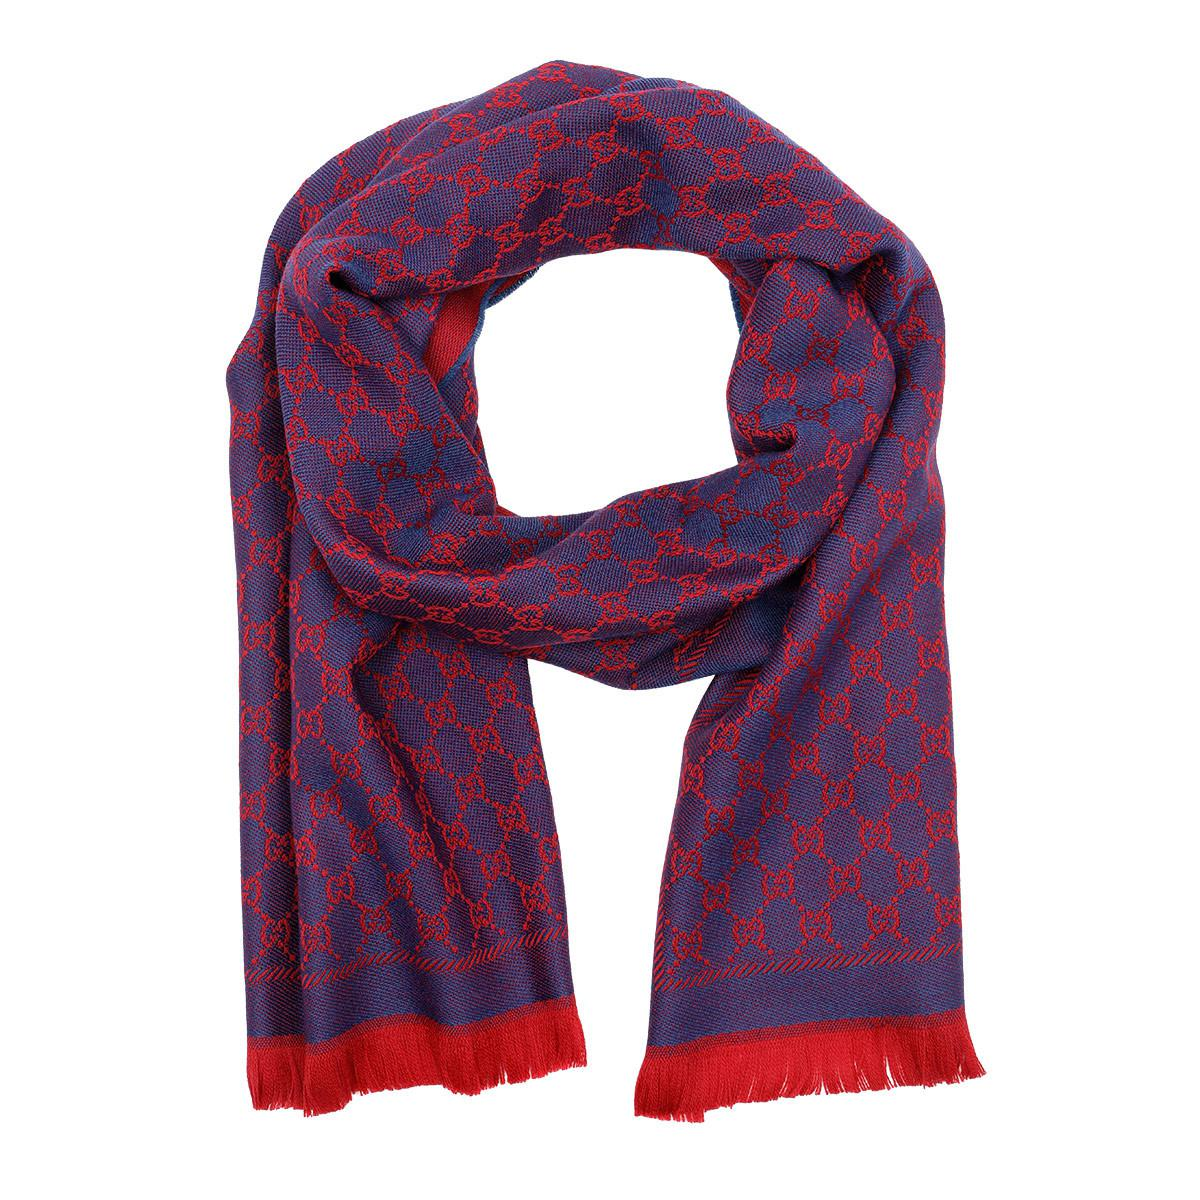 f7c7736c6a8 Gucci New Sten Scarf Red Blue in Red - Lyst